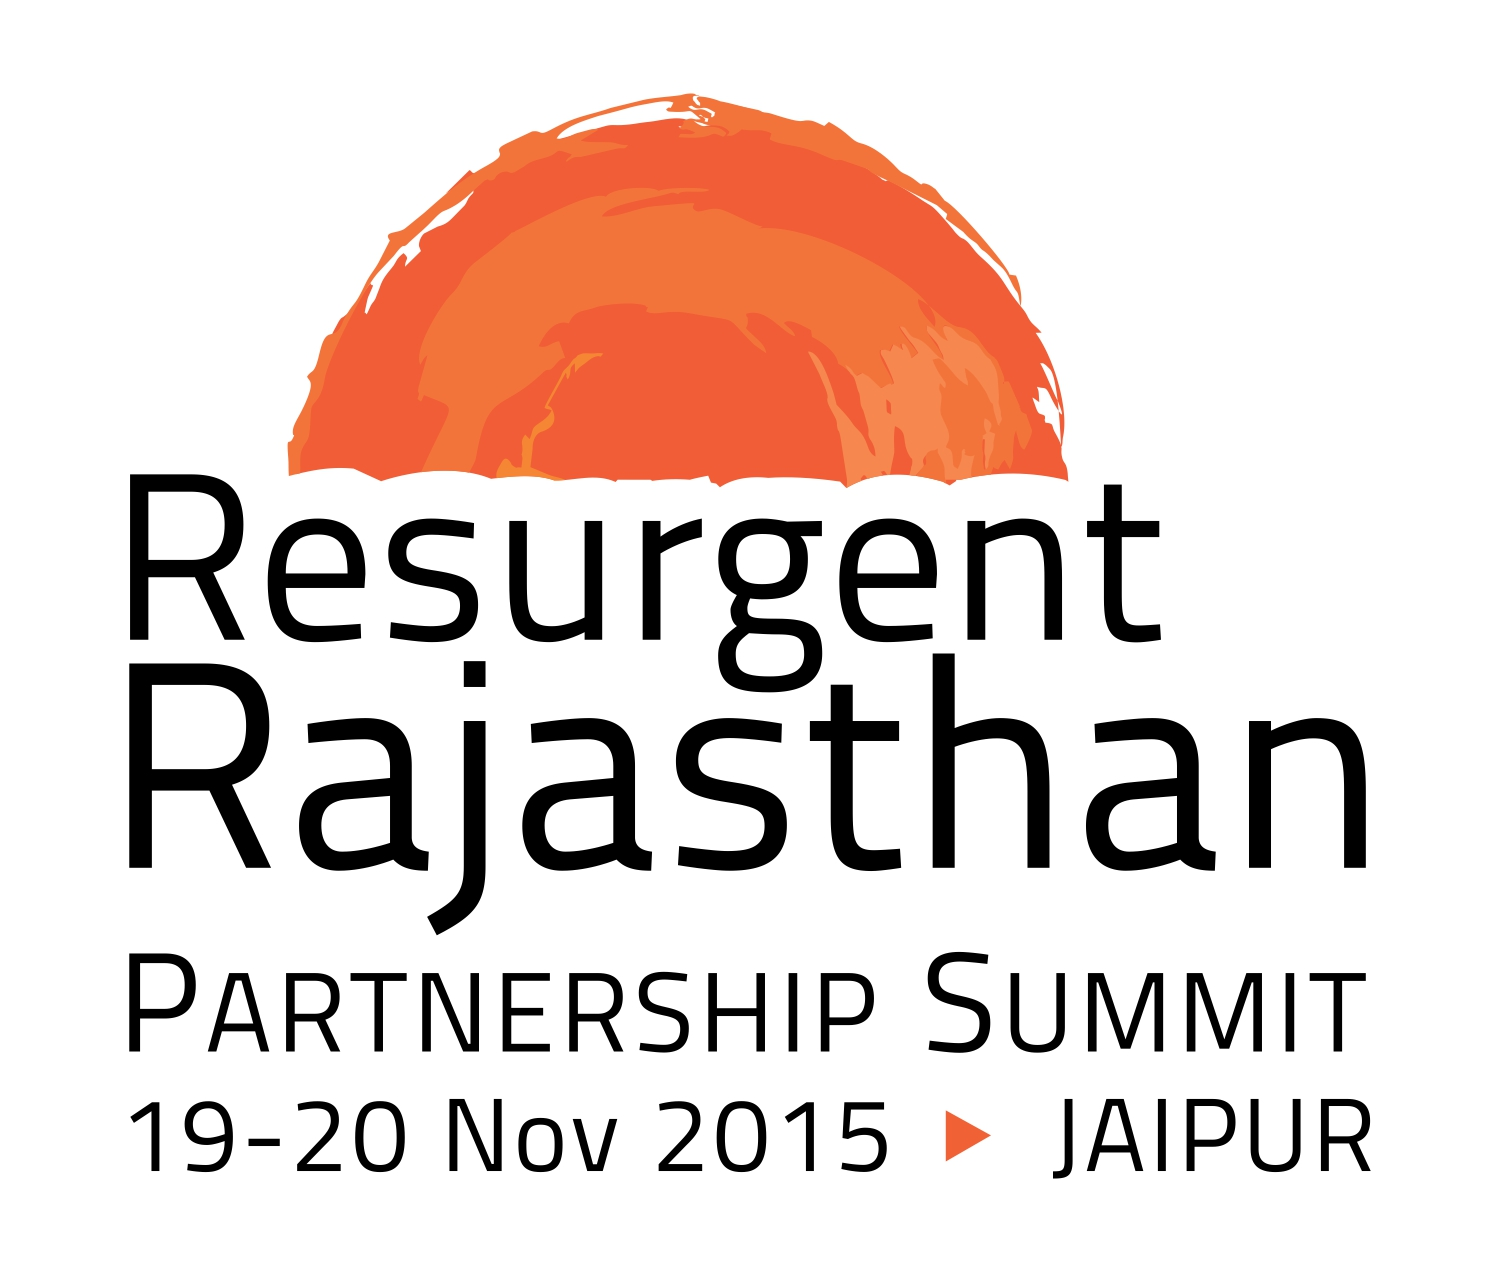 Resurgent Rajasthan Partnership Summit 2015 on 19-20 November